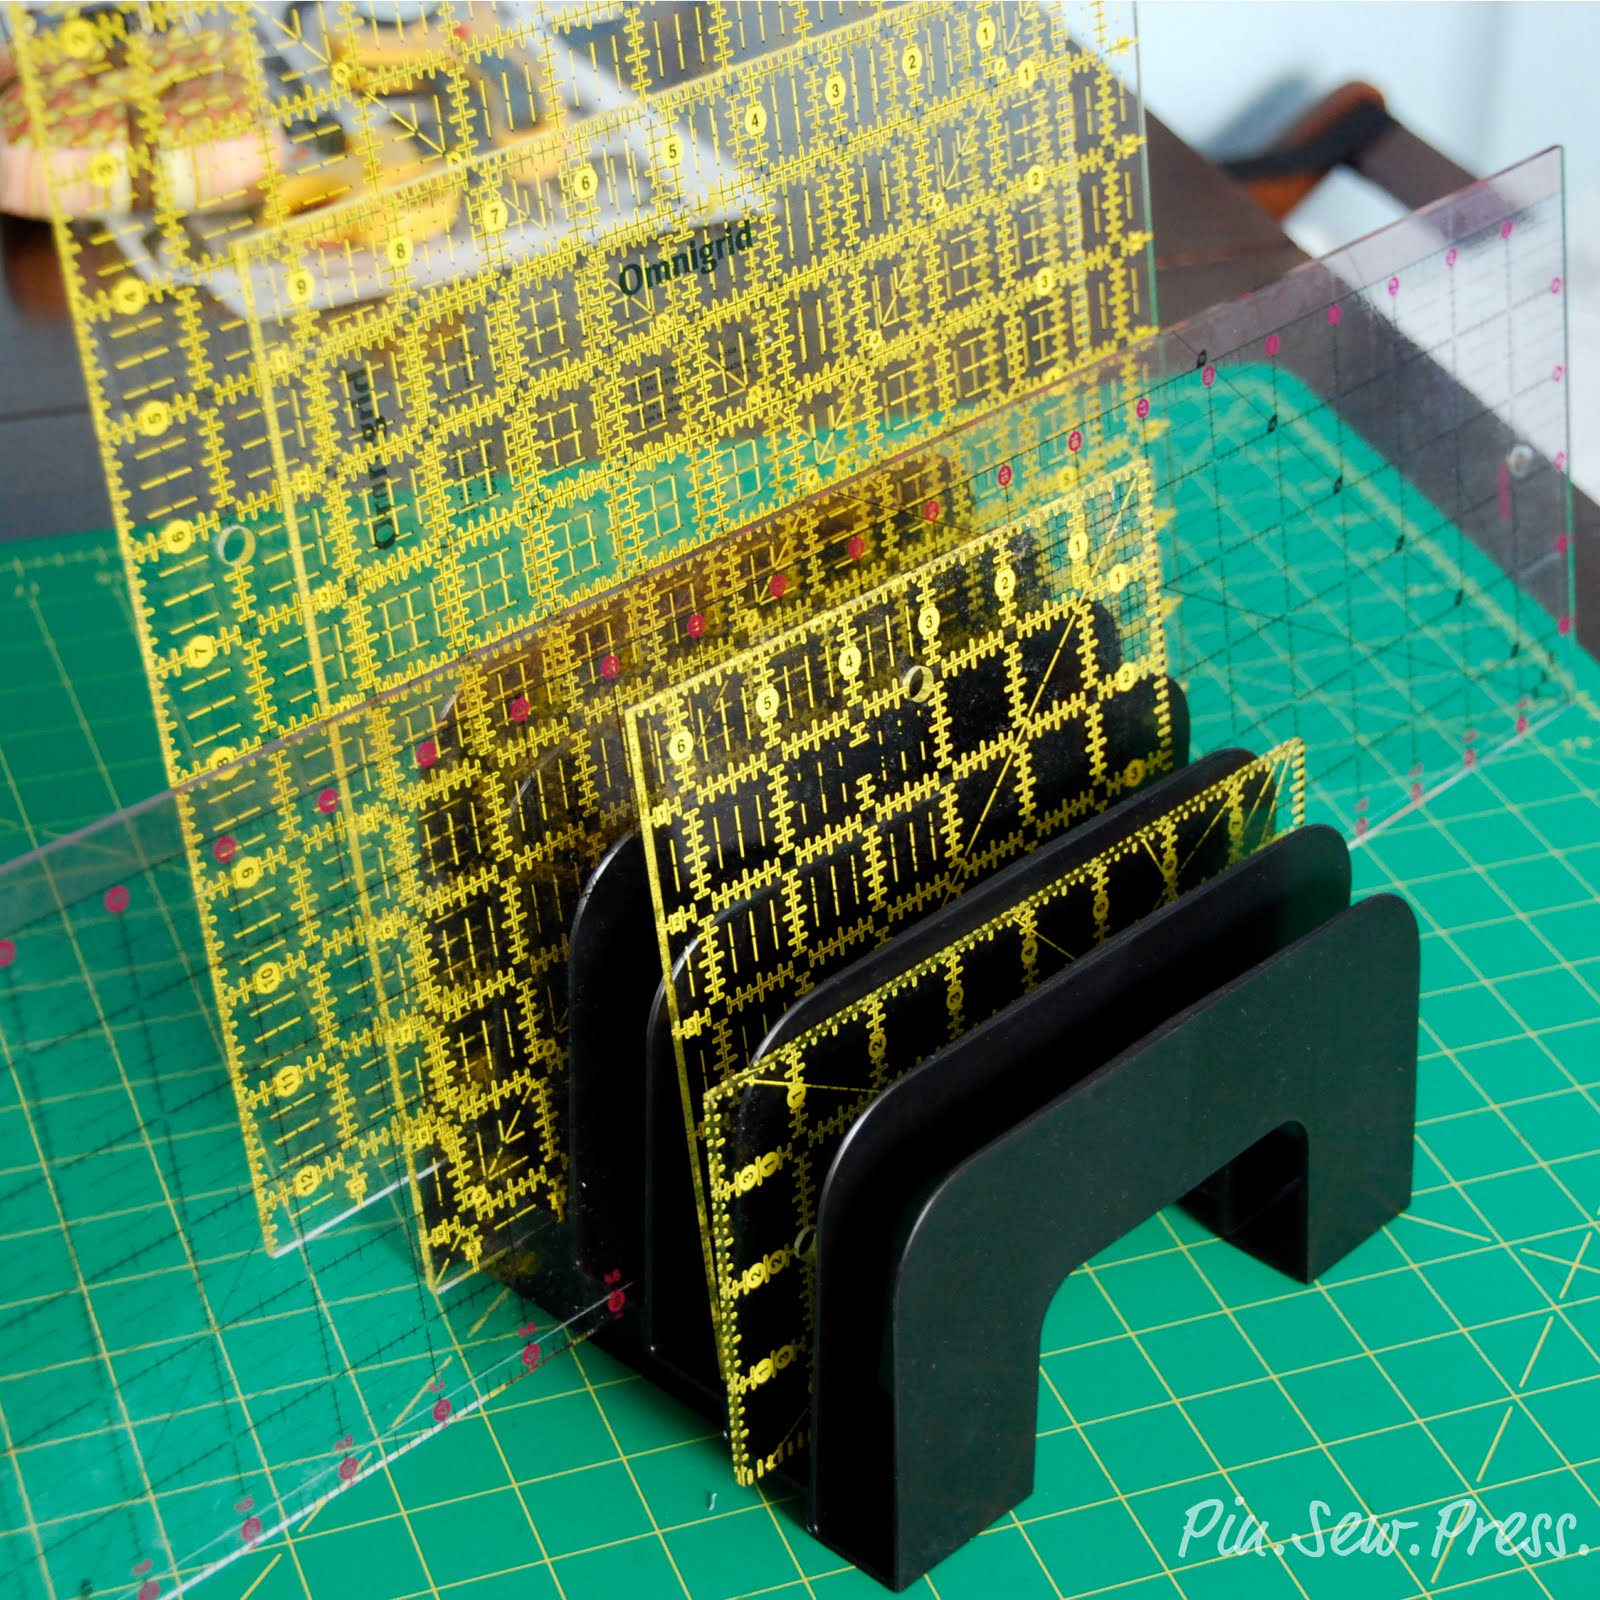 Pin. Sew. Press.: Organize Your Rulers